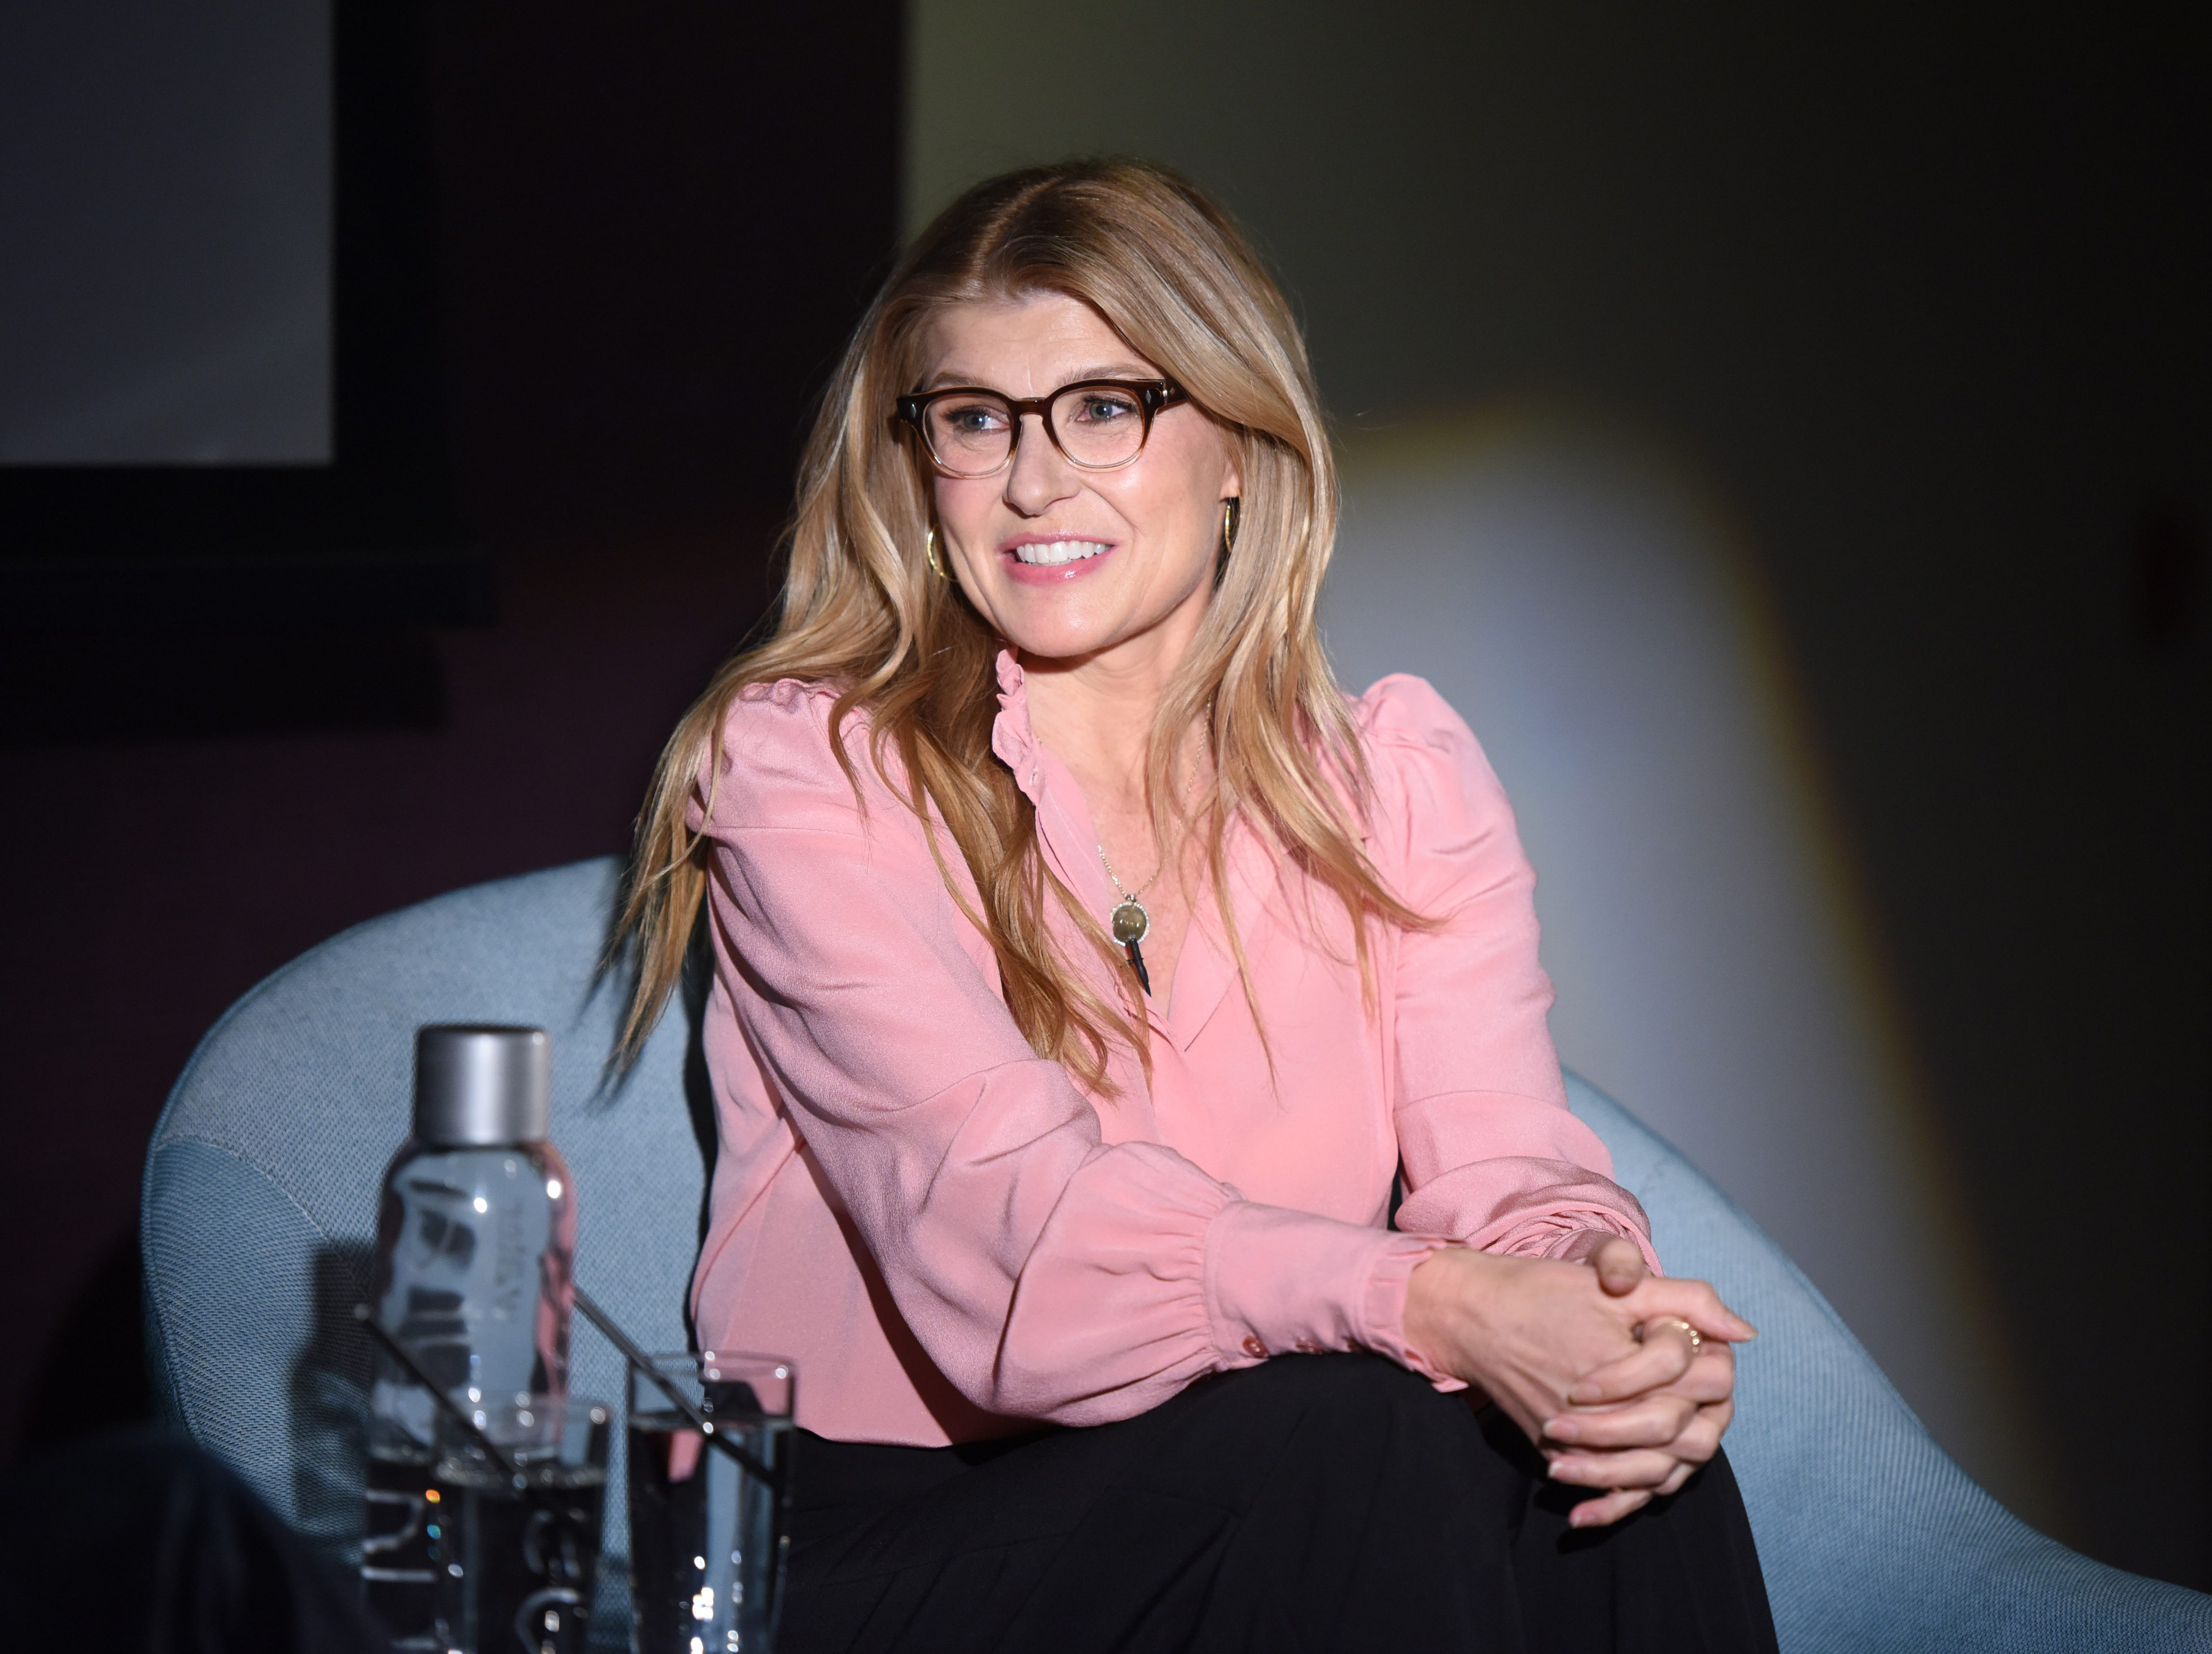 WEST HOLLYWOOD, CA - DECEMBER 17:  Connie Britton speaks at Tribeca Talks The Journey Inspired By TUMI With Nicole Holofcener And Connie Britton at Andaz West Hollywood on December 17, 2018 in West Hollywood, California.  (Photo by Vivien Killilea/Getty Images for Tribeca) ORG XMIT: 775271030 ORIG FILE ID: 1074346086